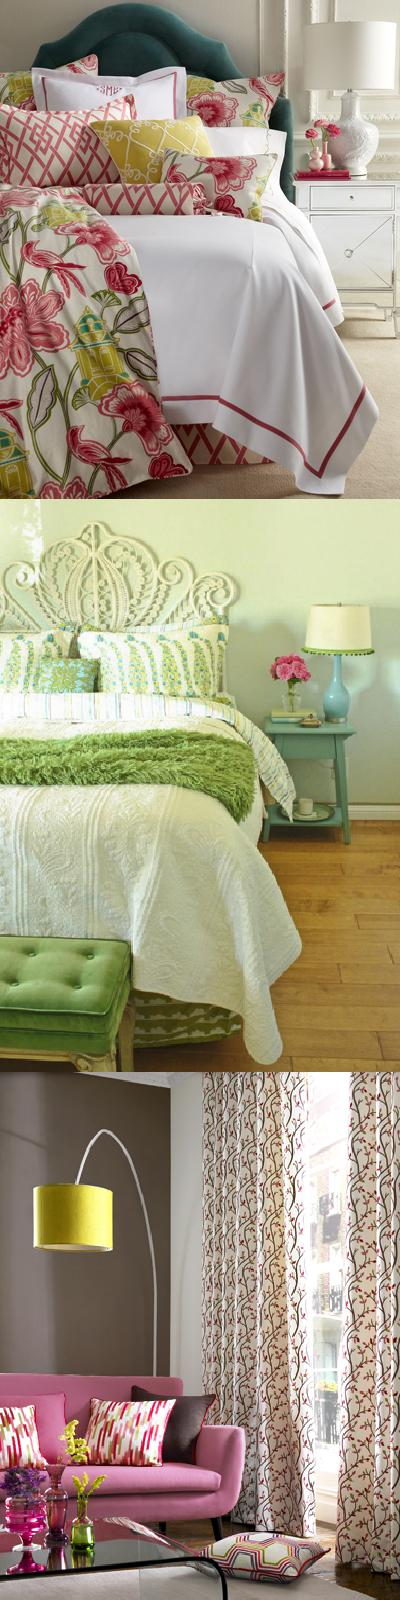 Spring is nearly here! As the weather warms up, colors brighten up outside, as do the colors in your home.